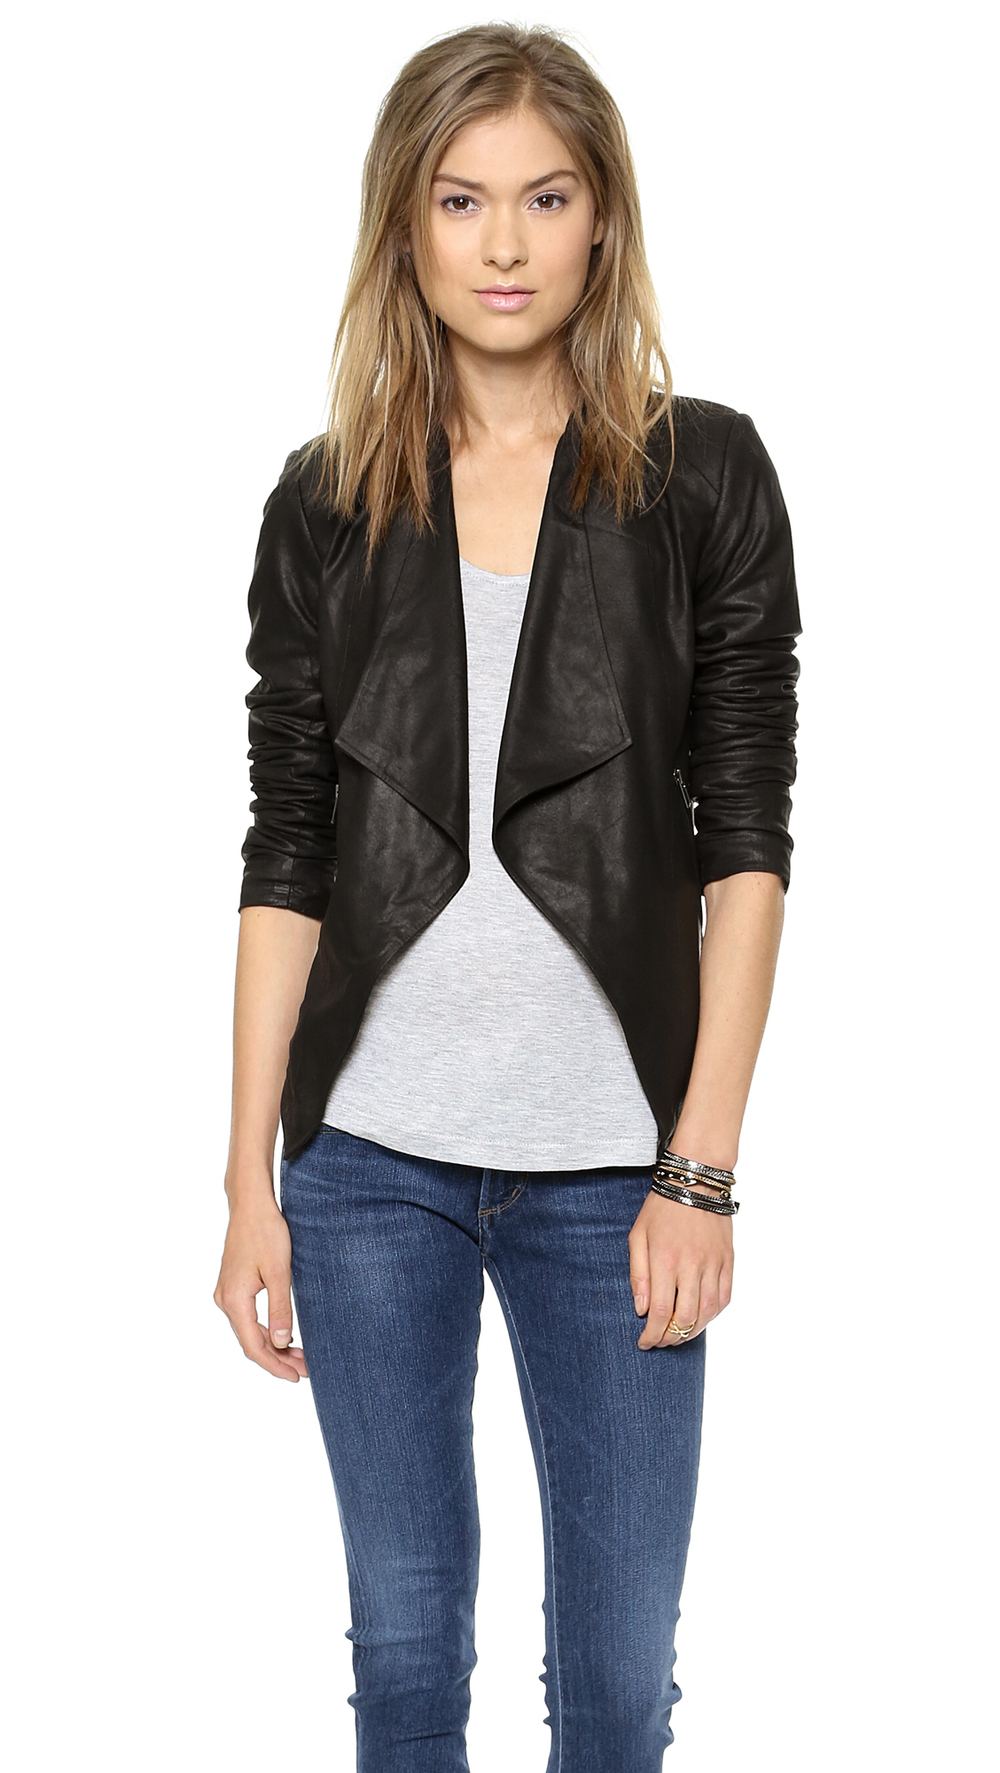 BB Dakota  Tyne Leather Jacket  ($294)